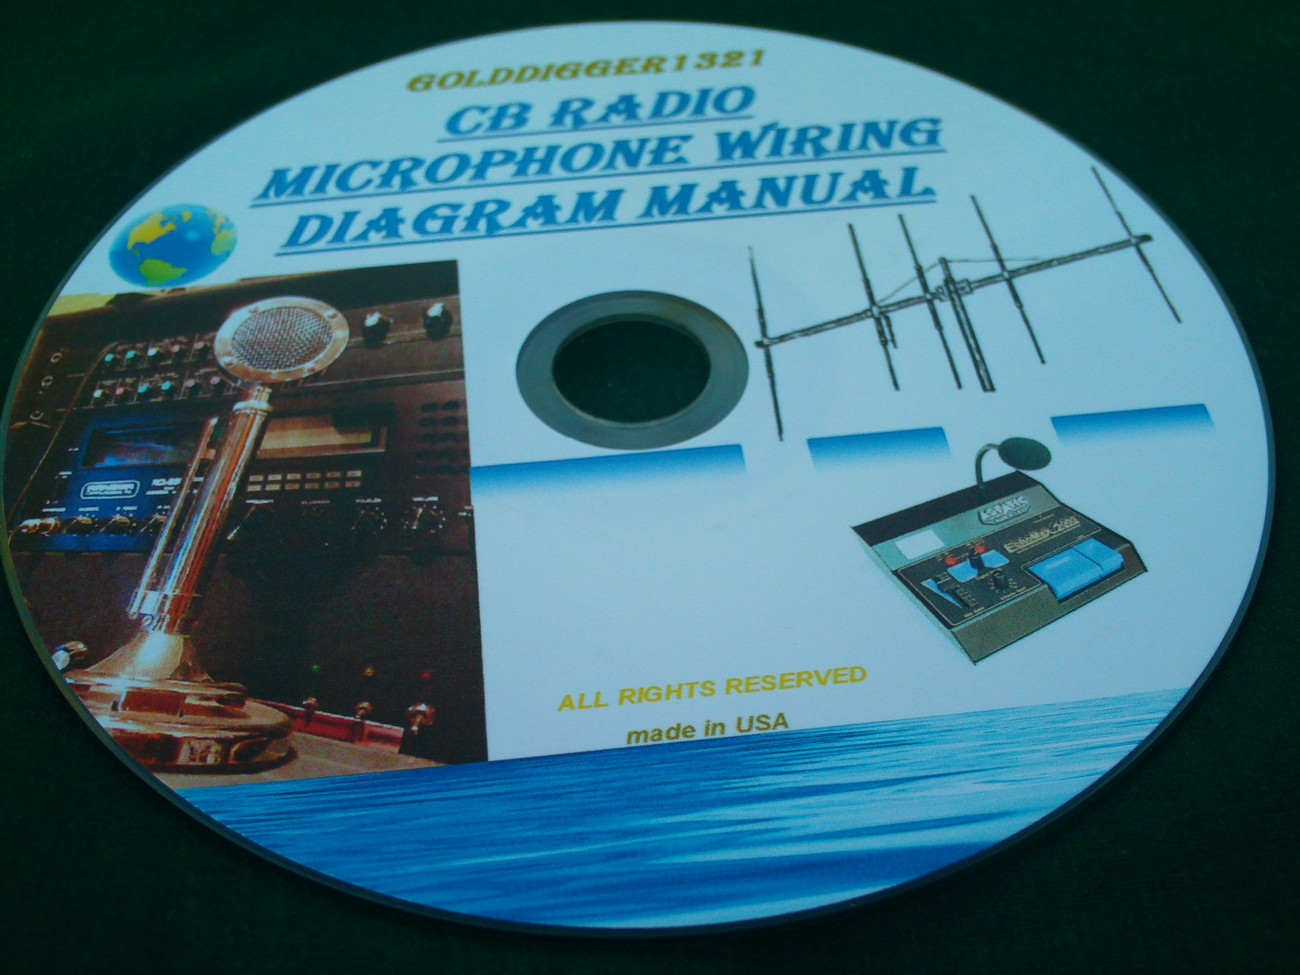 hight resolution of cb radio microphone wiring diagram manual on cd